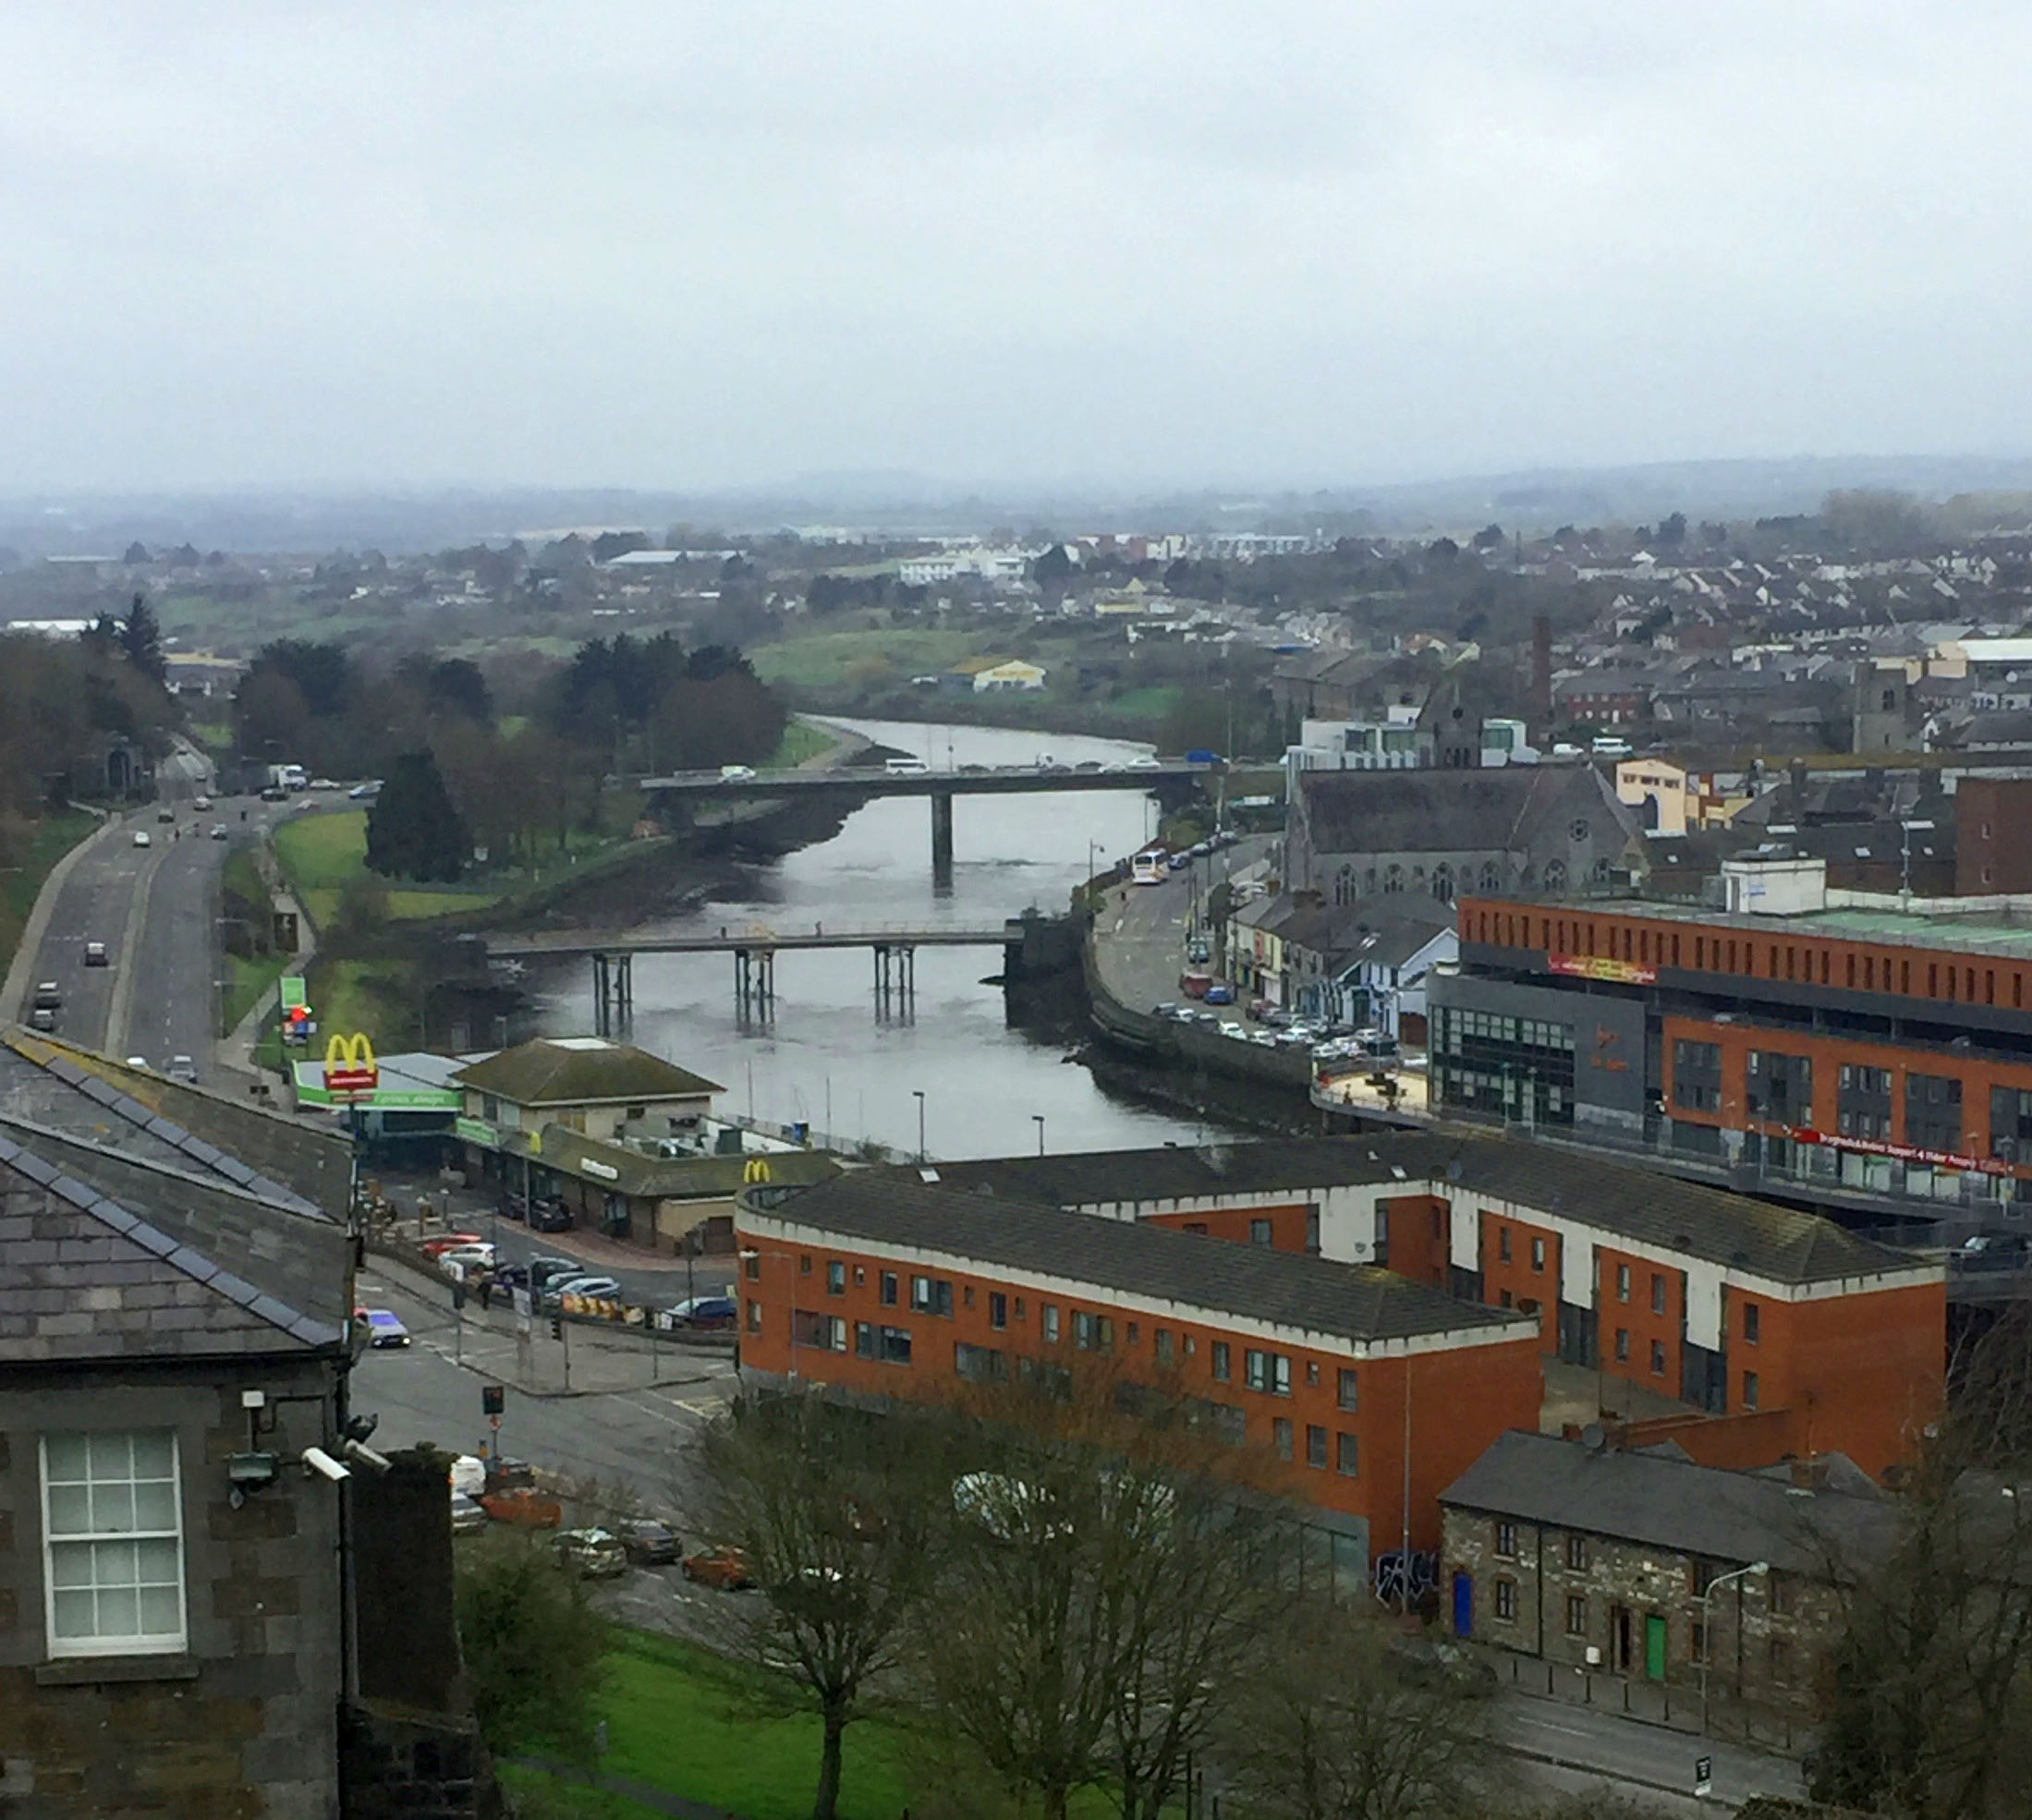 Drogheda and the River Boyne, taken from Millmount Fort (author's image)